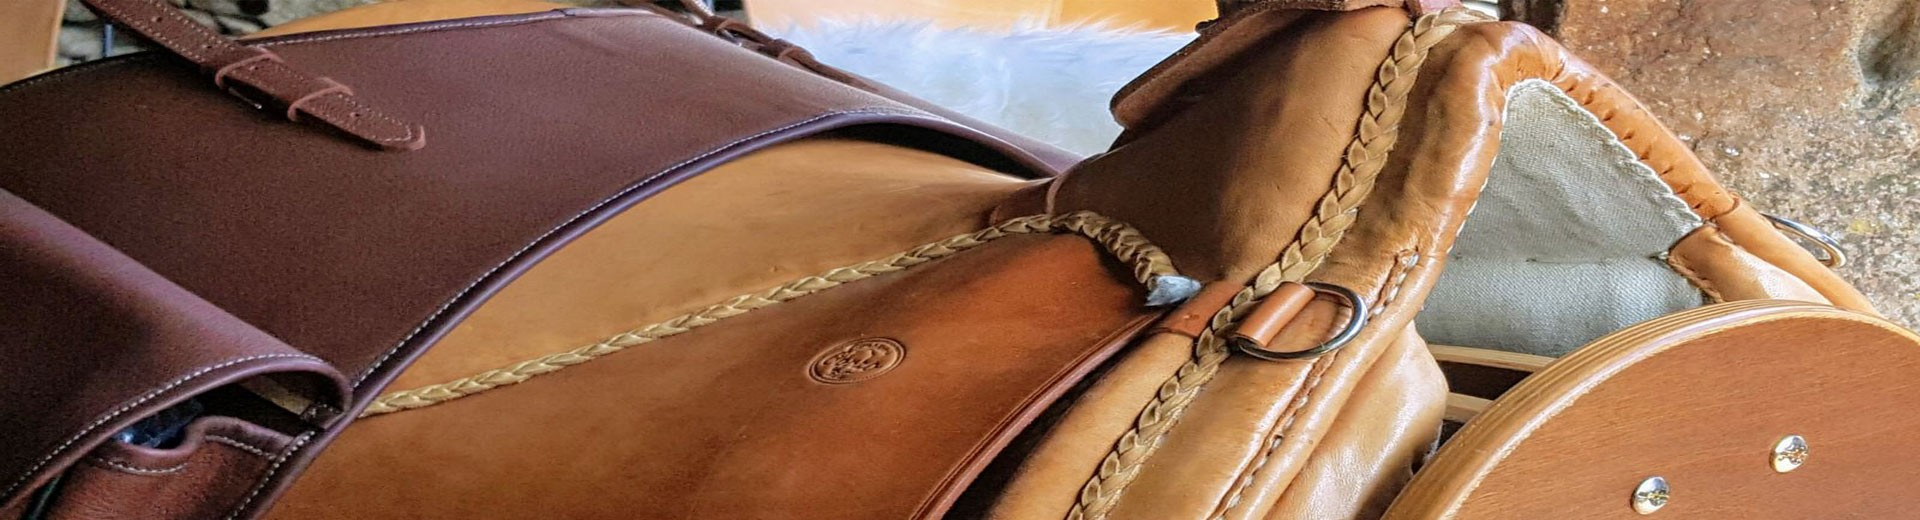 Craft and tradition in leather